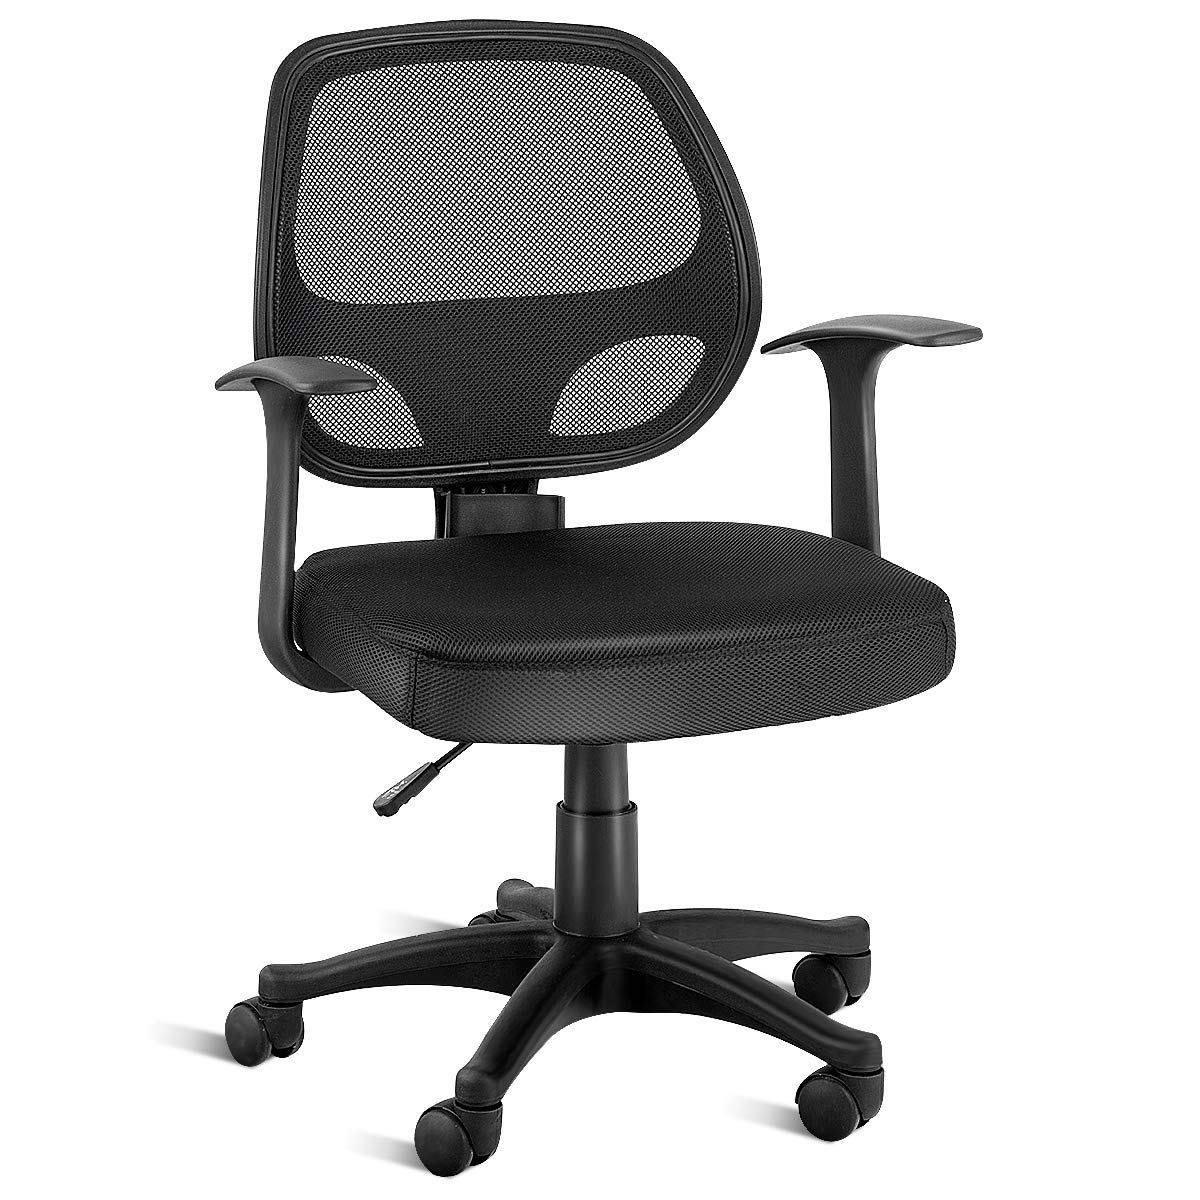 HAPPYGRILL Mid-Back Task Chair with Swivel Casters and Armrests Seat Height Adjustable Ergonomic Executive Mesh Office Chair (Black)